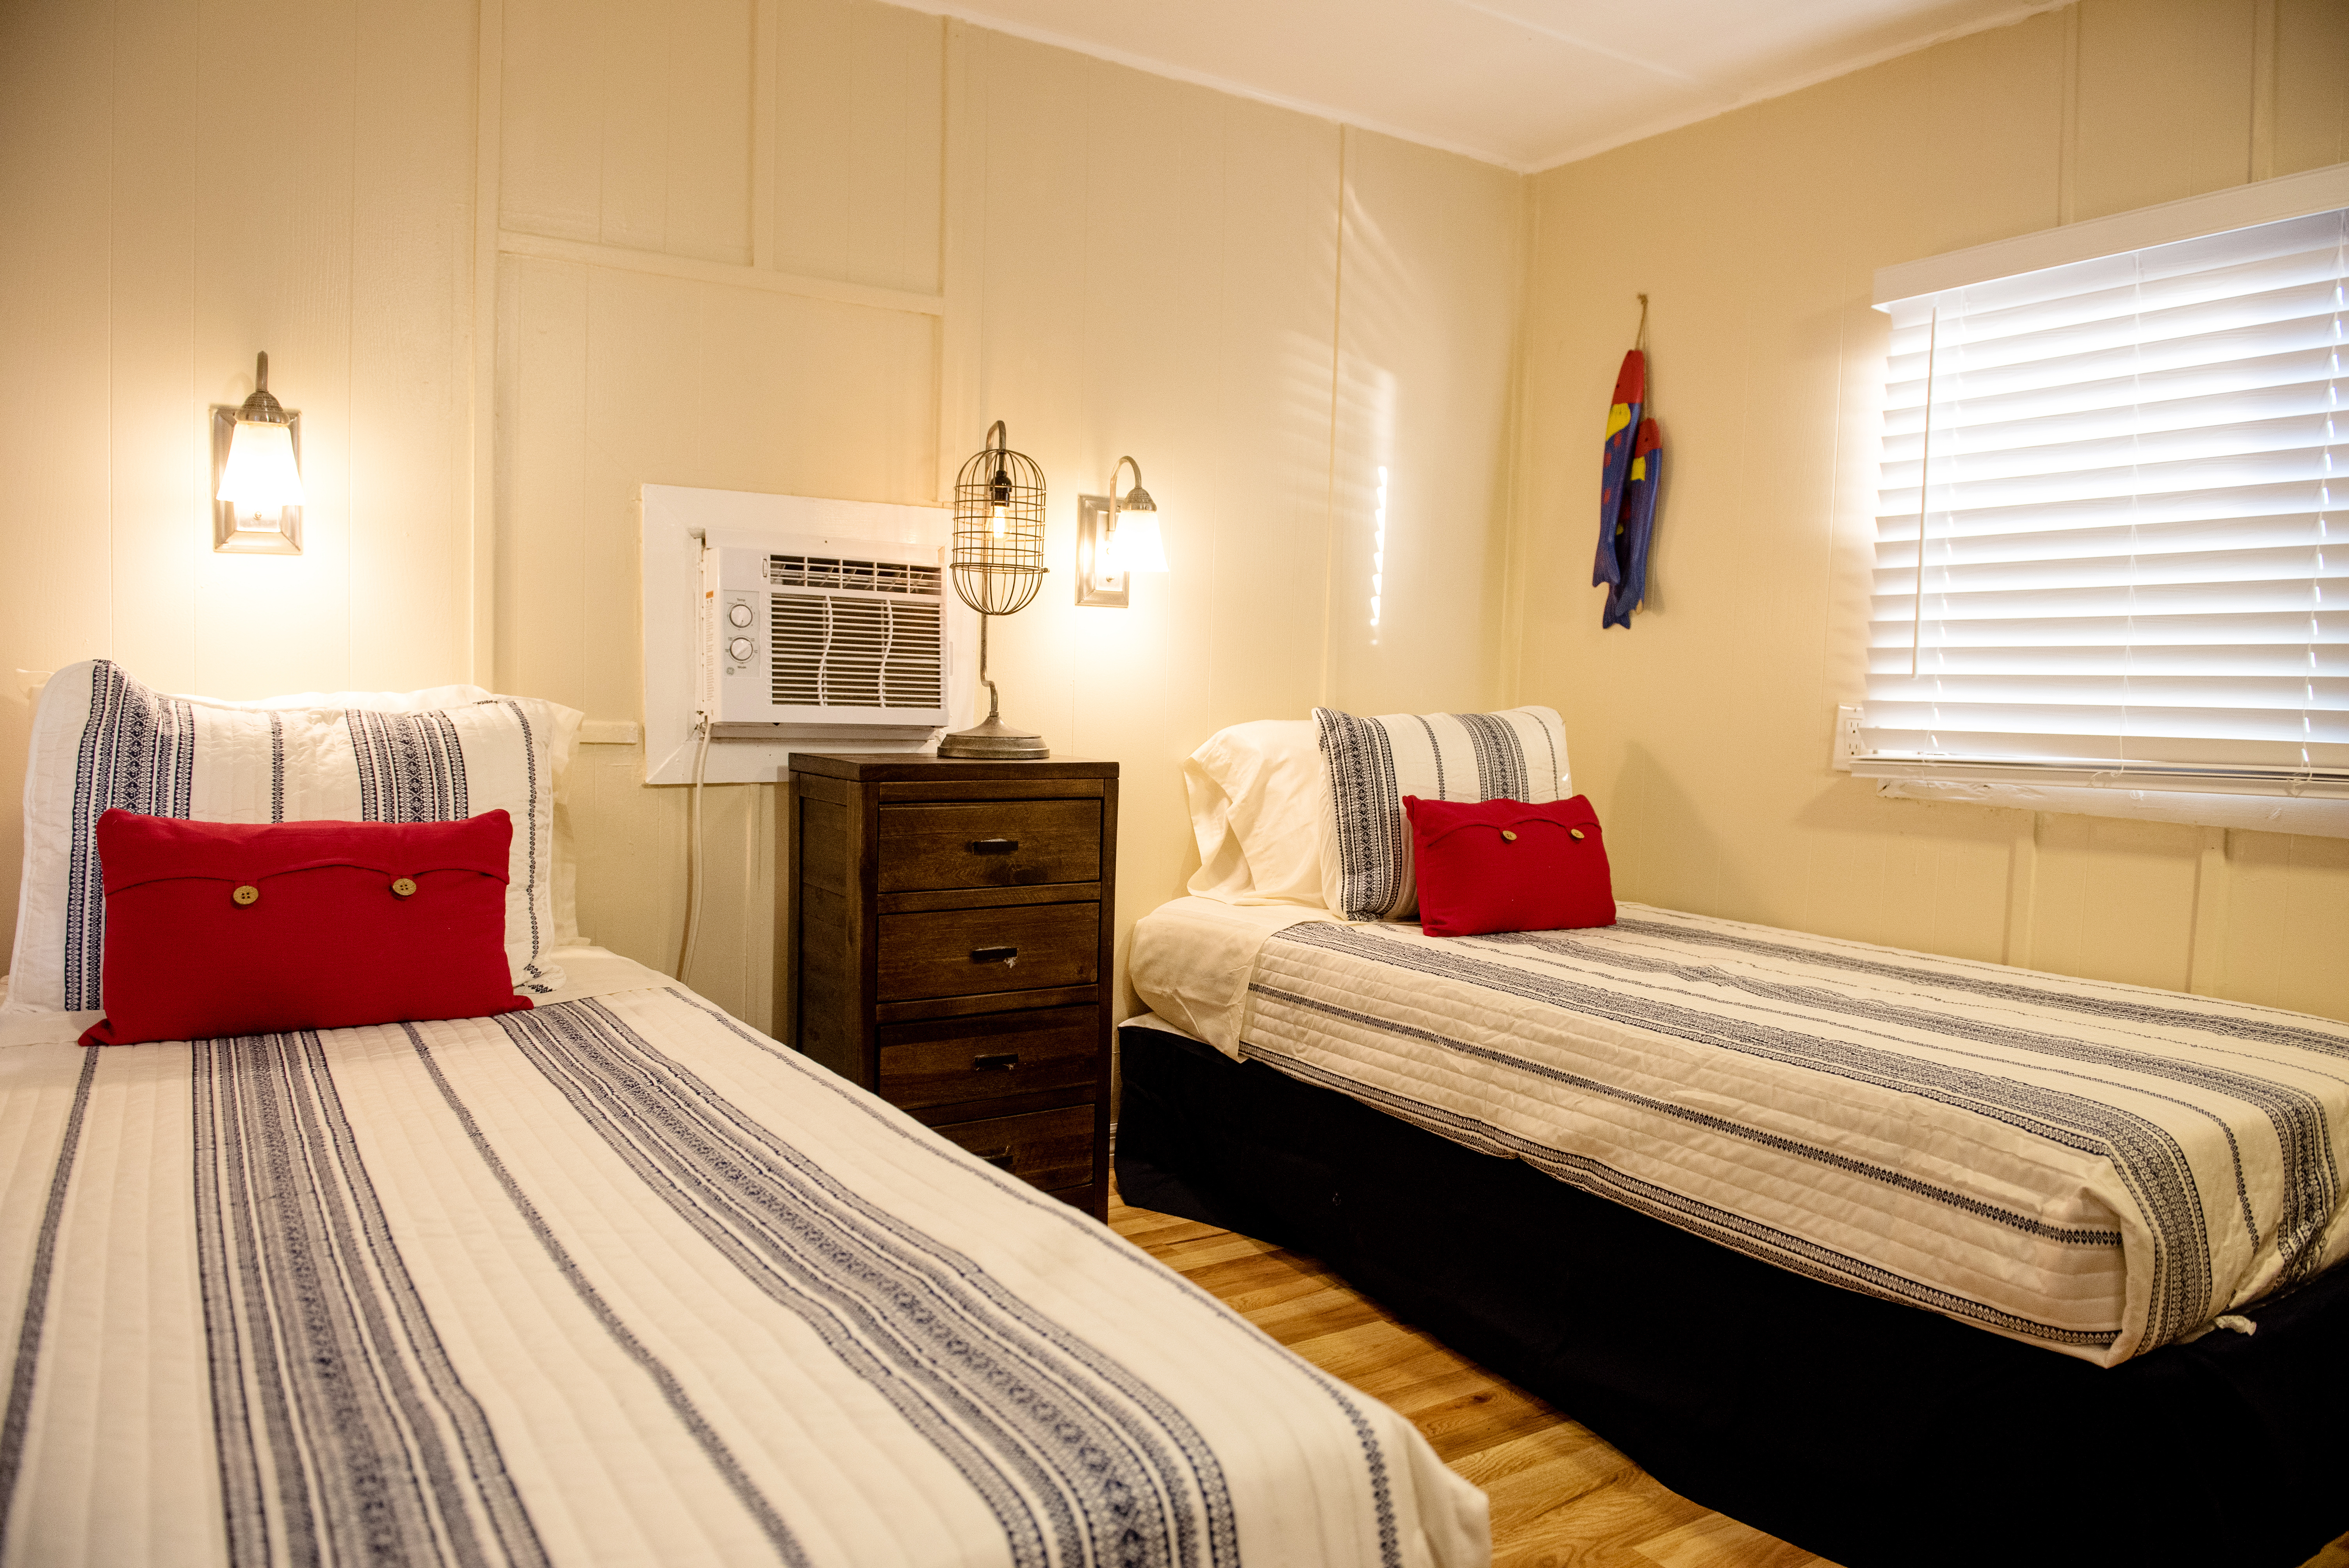 View of one of the bedrooms in one of our two bedroom units.